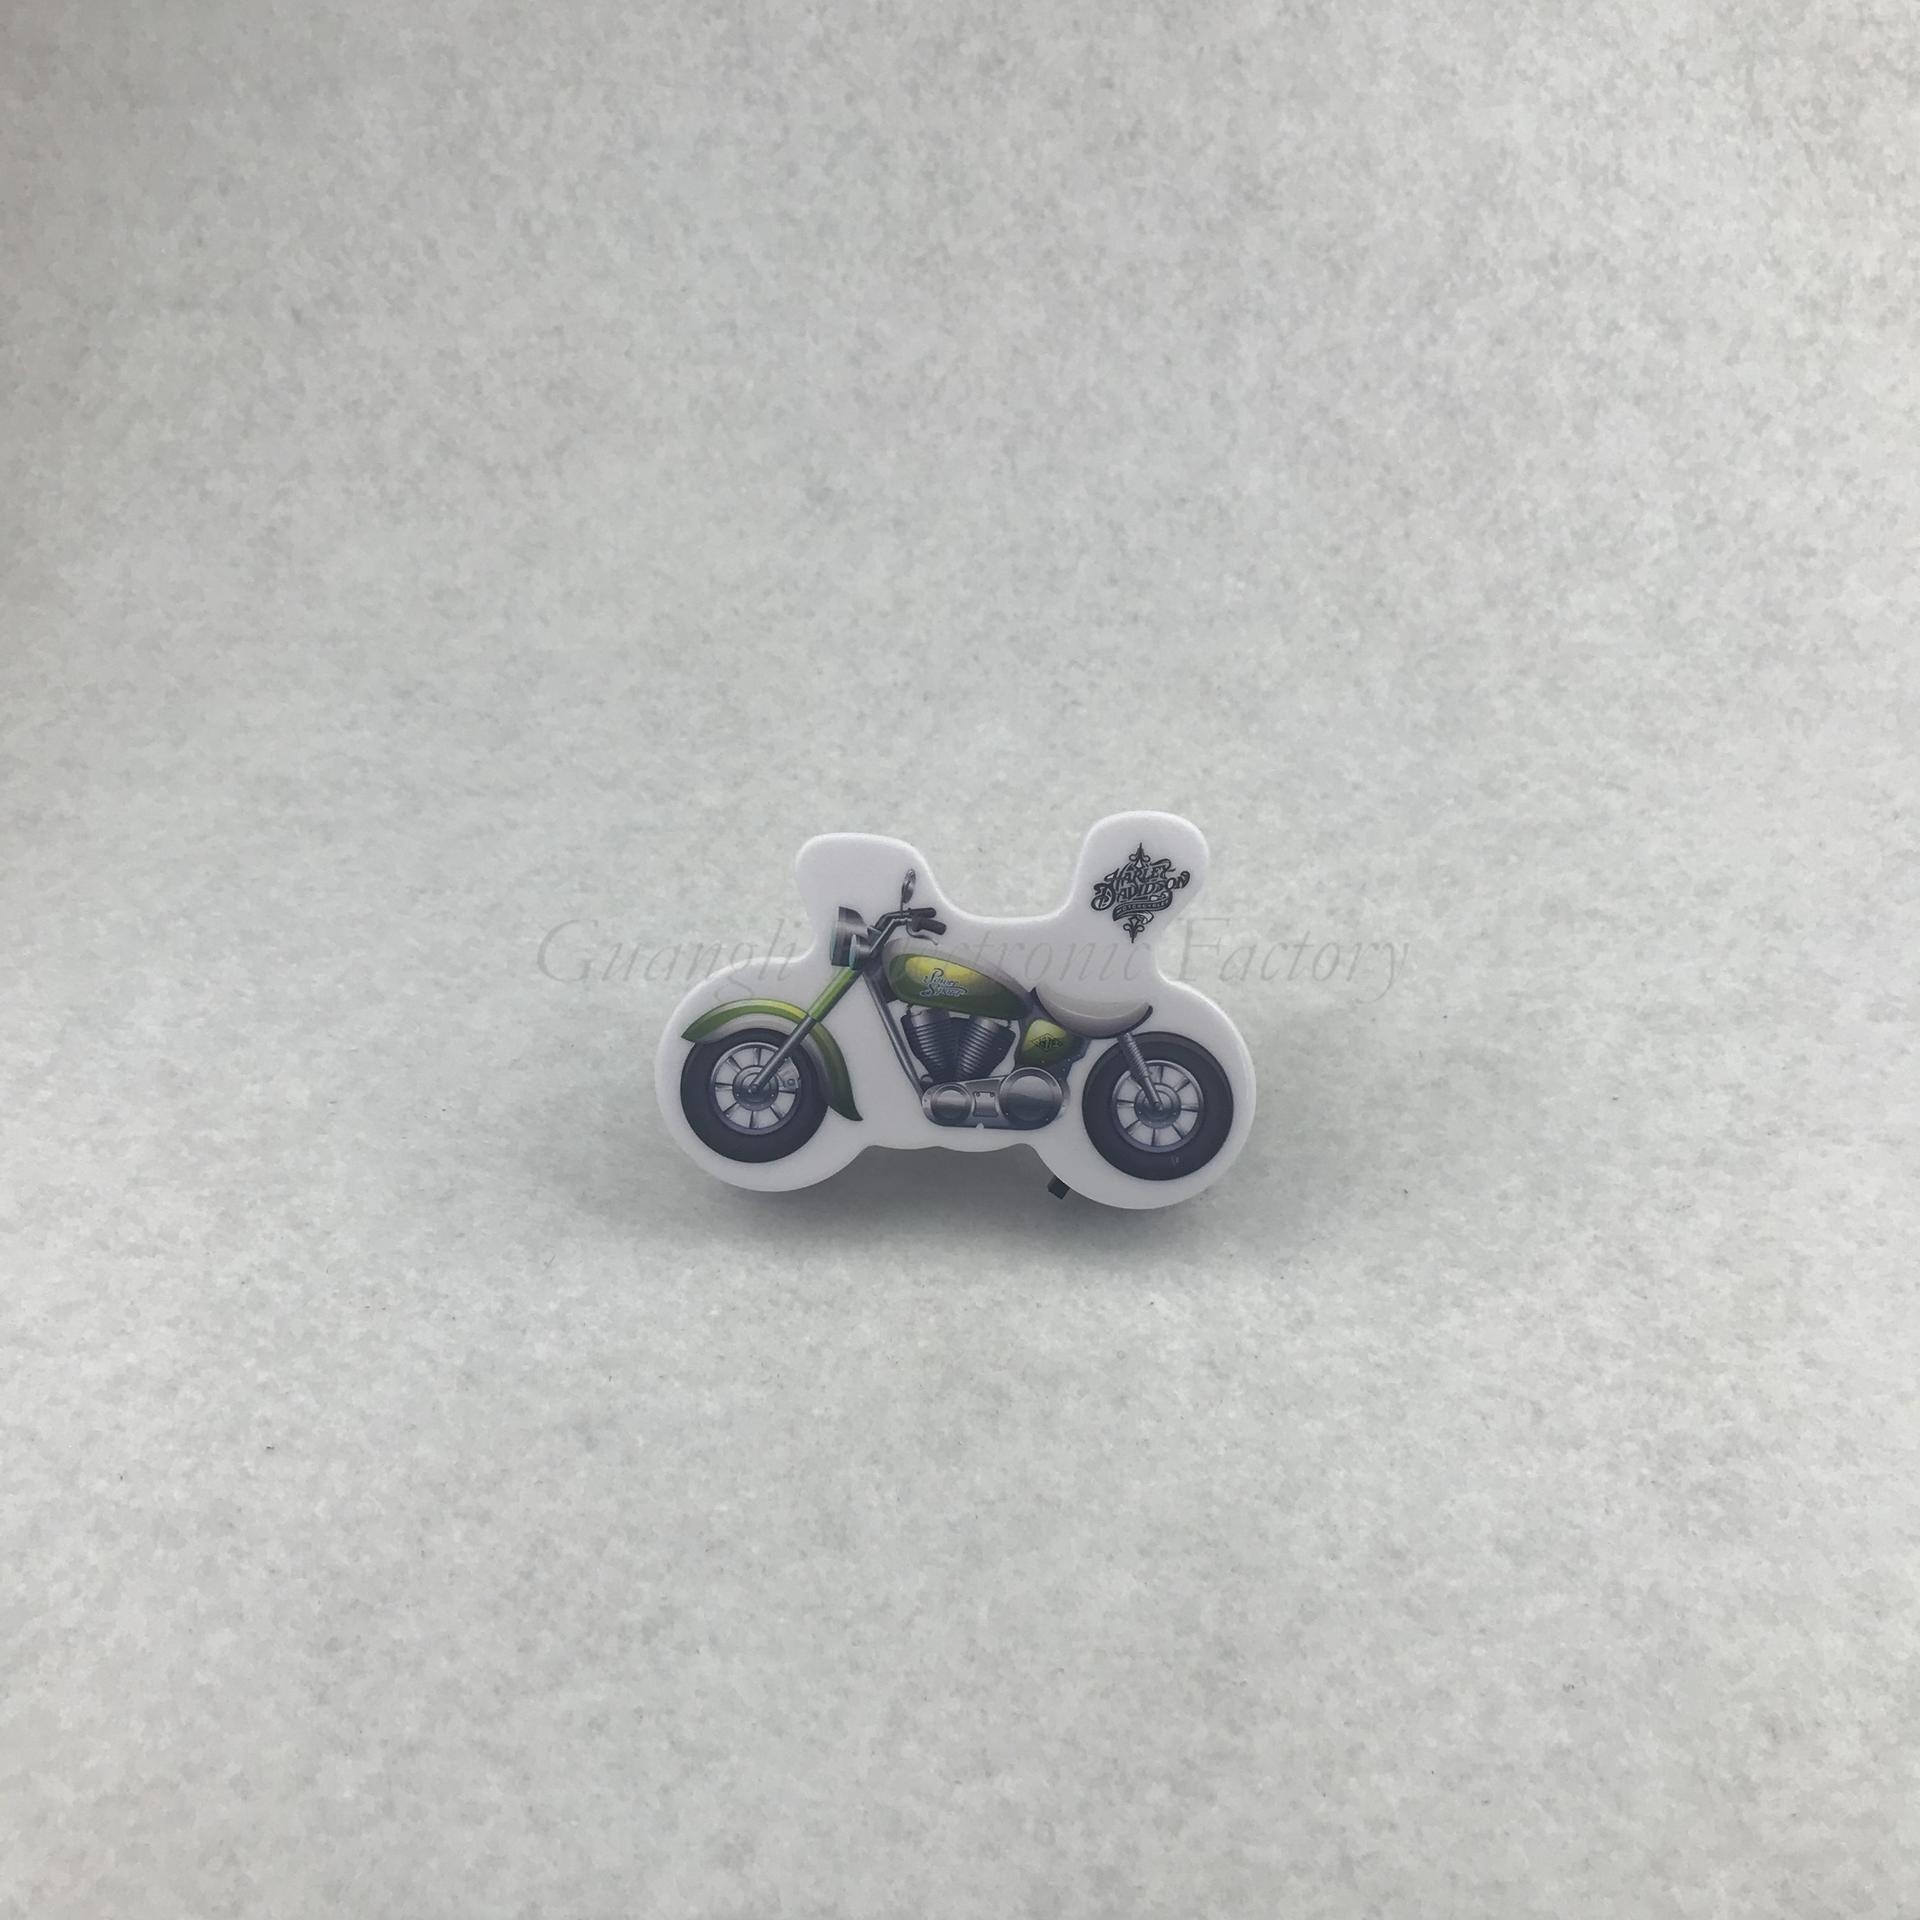 4SMD mini switch plug in motorbike Motorcycleroom usege night light For Baby Bedroom cute gift W012